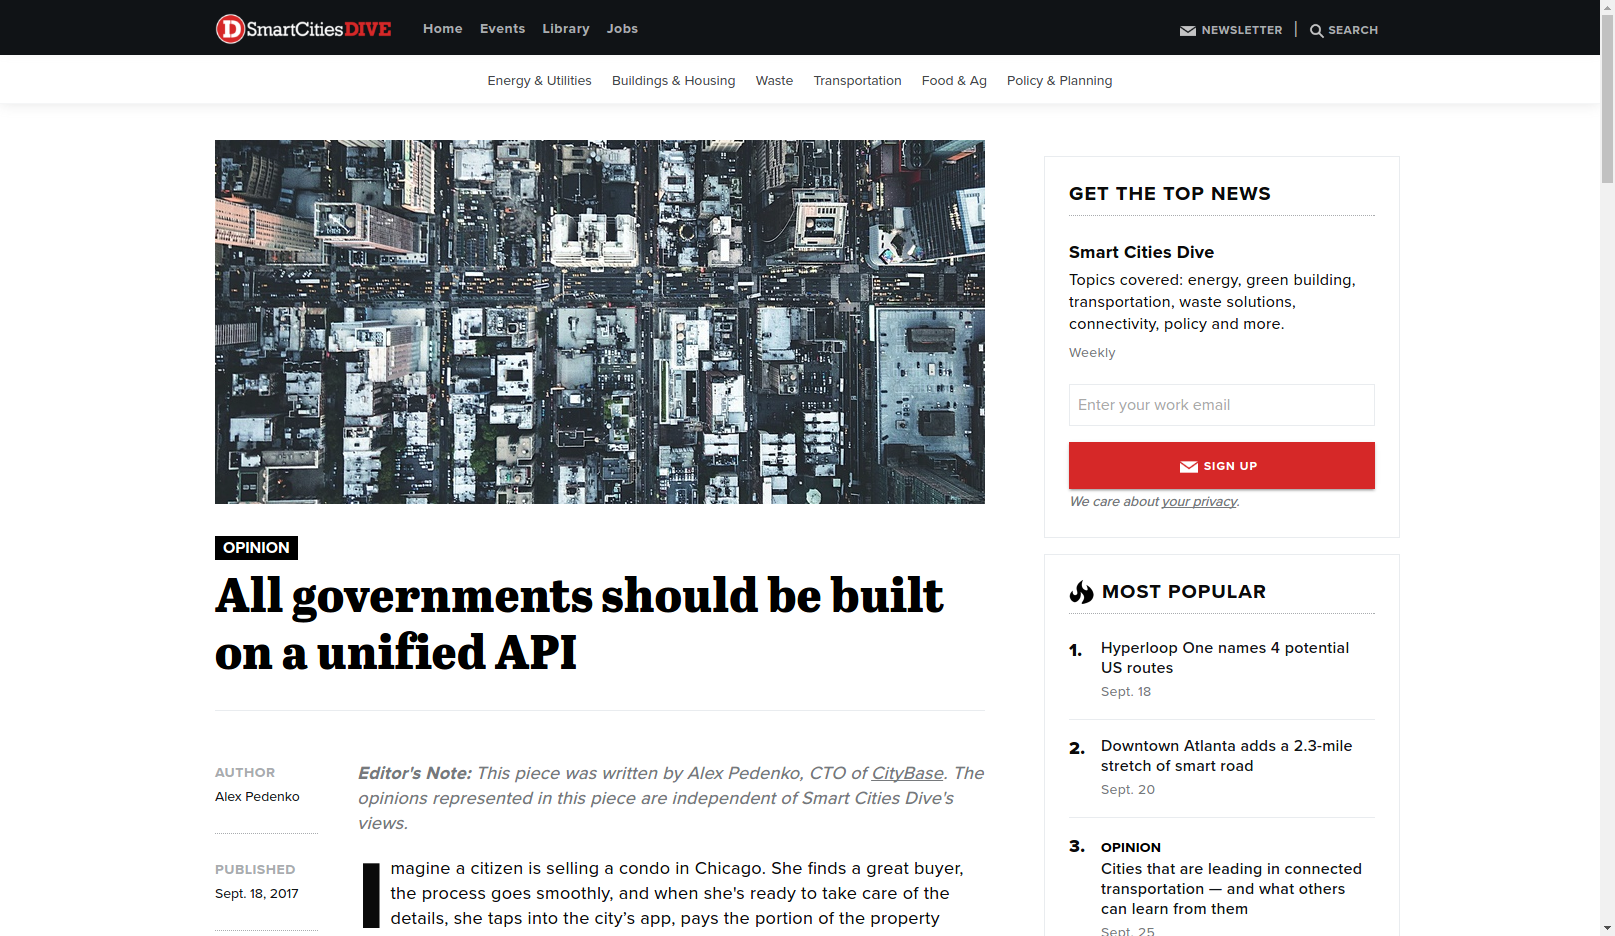 All governments should be built on a unified API